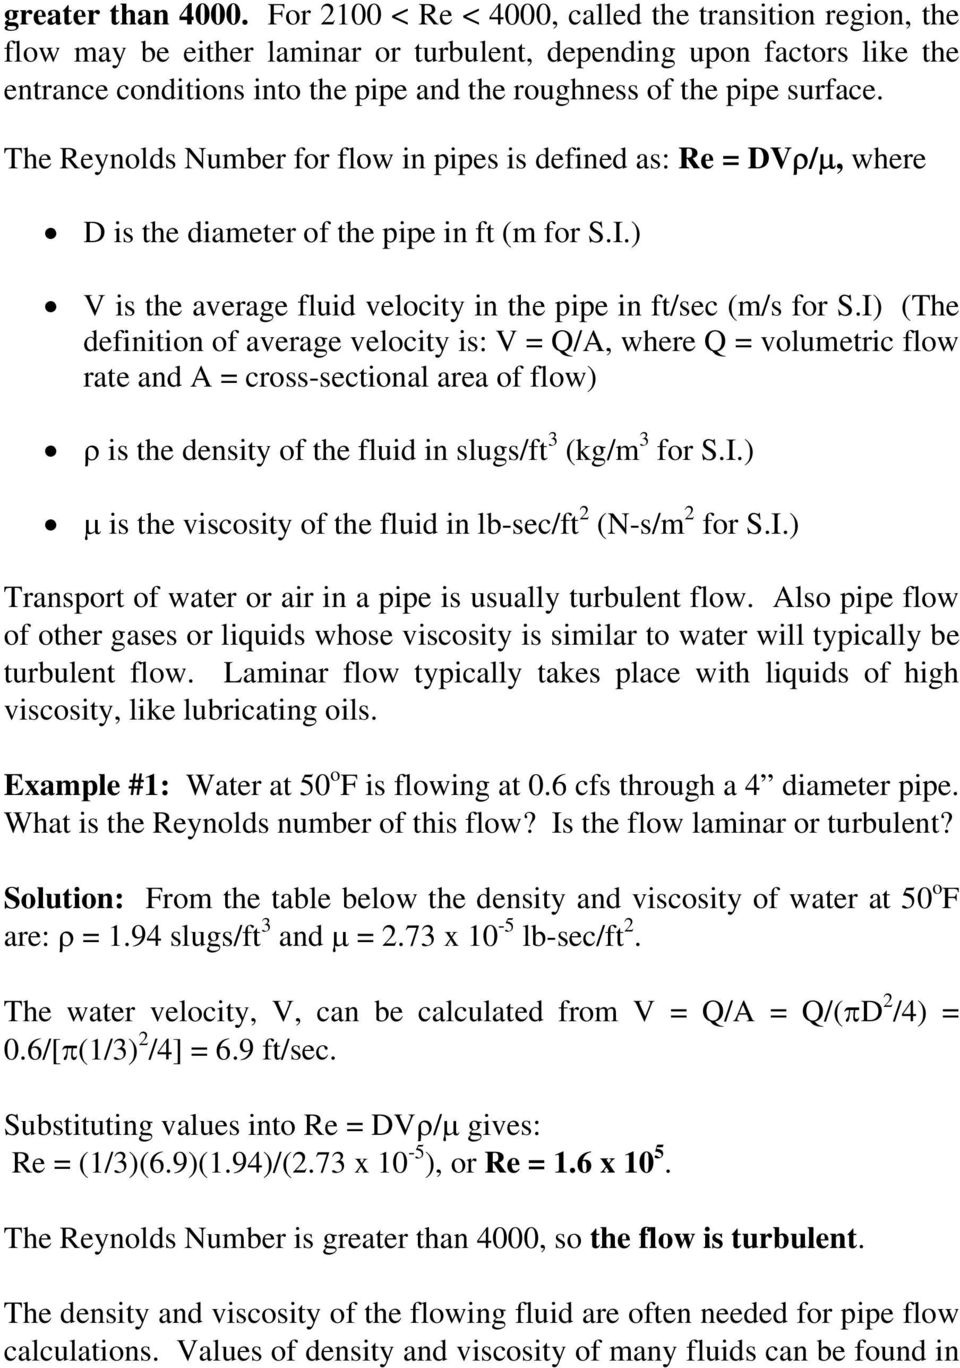 surface. The Reynolds Number for flow in pipes is defined as: Re = DVρ/µ, where D is the diameter of the pipe in ft (m for S.I.) V is the average fluid velocity in the pipe in ft/sec (m/s for S.